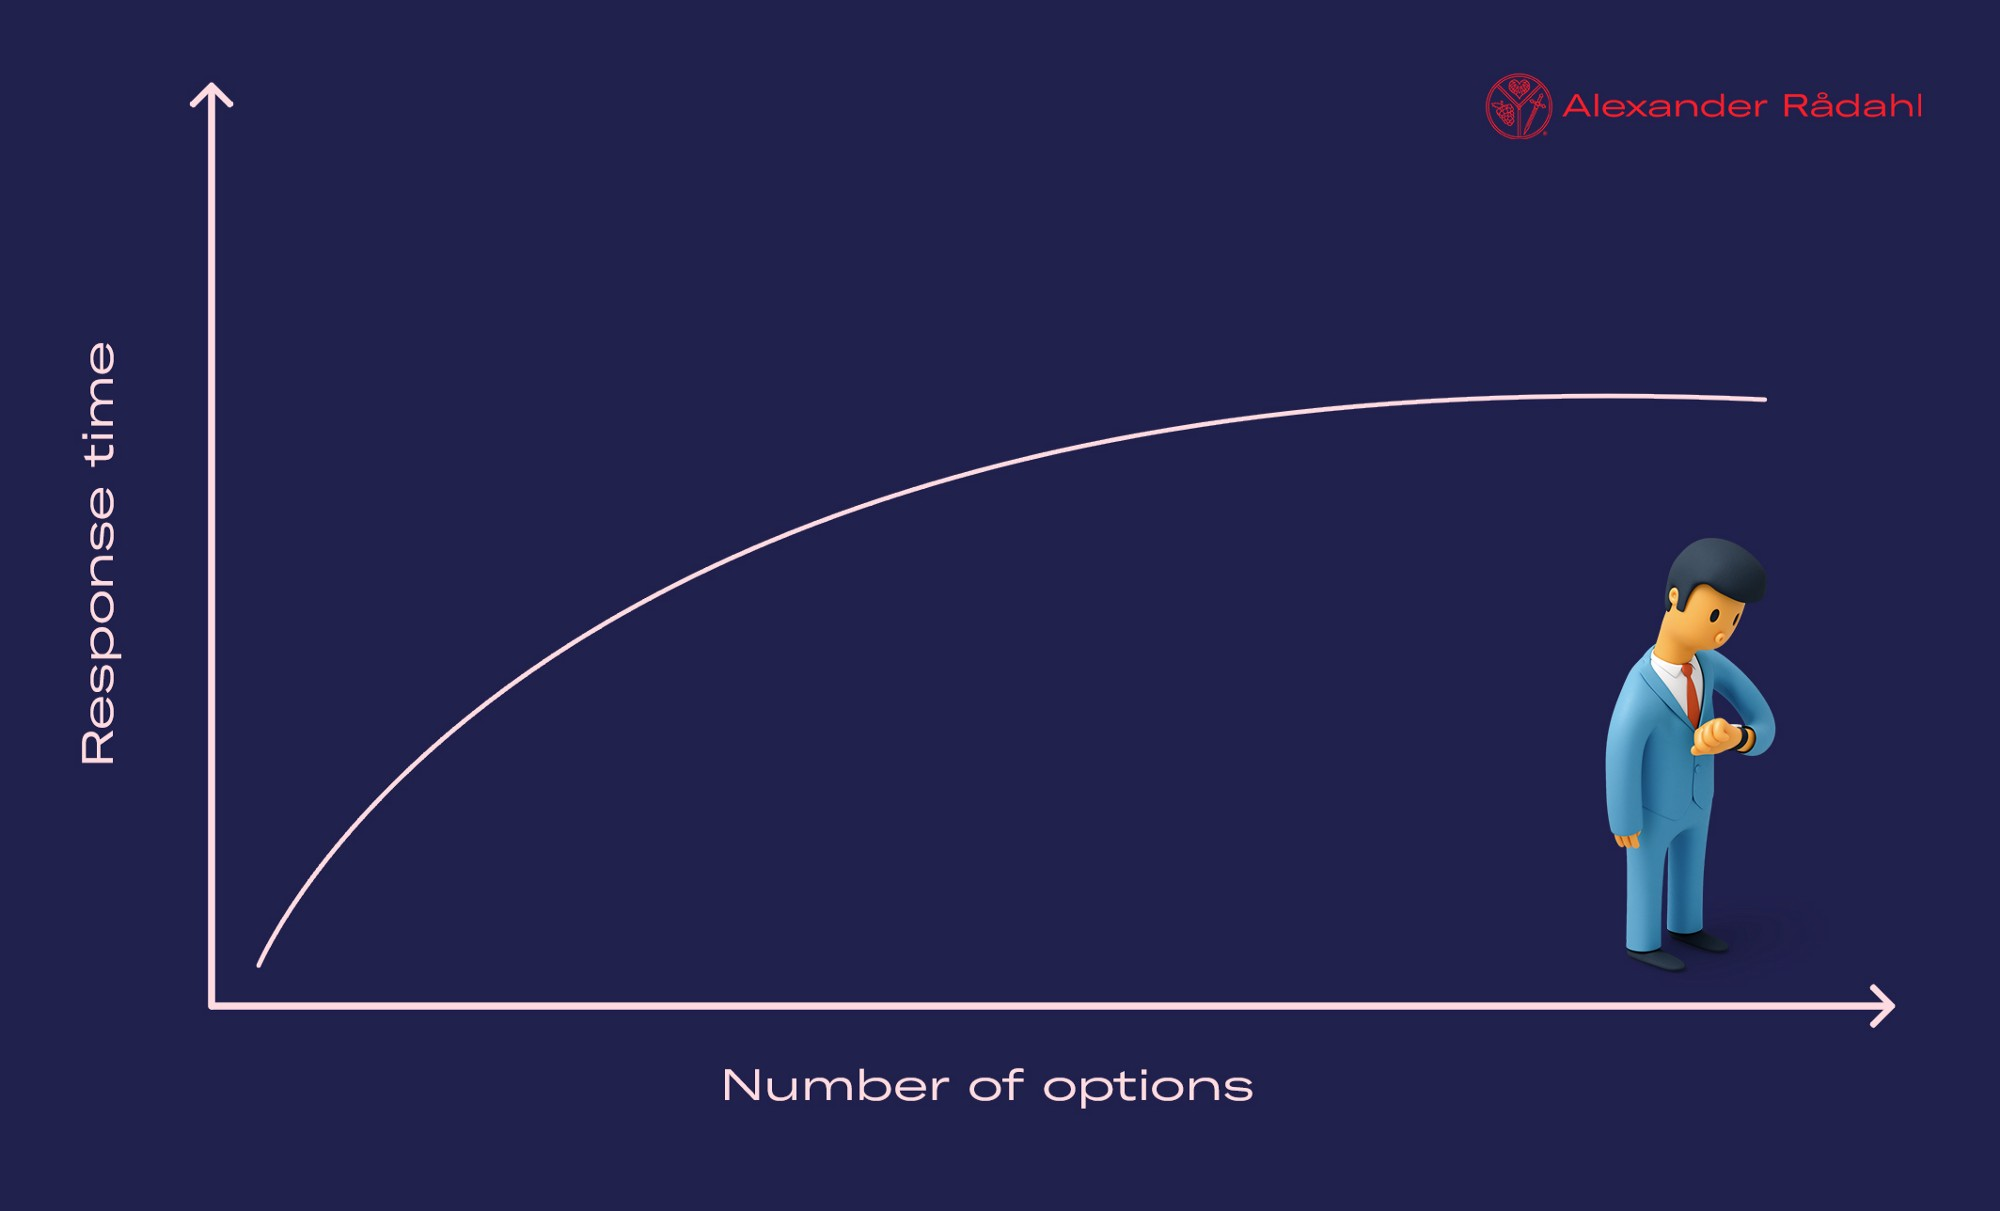 The more options the user has, the more time it takes to make a decision.